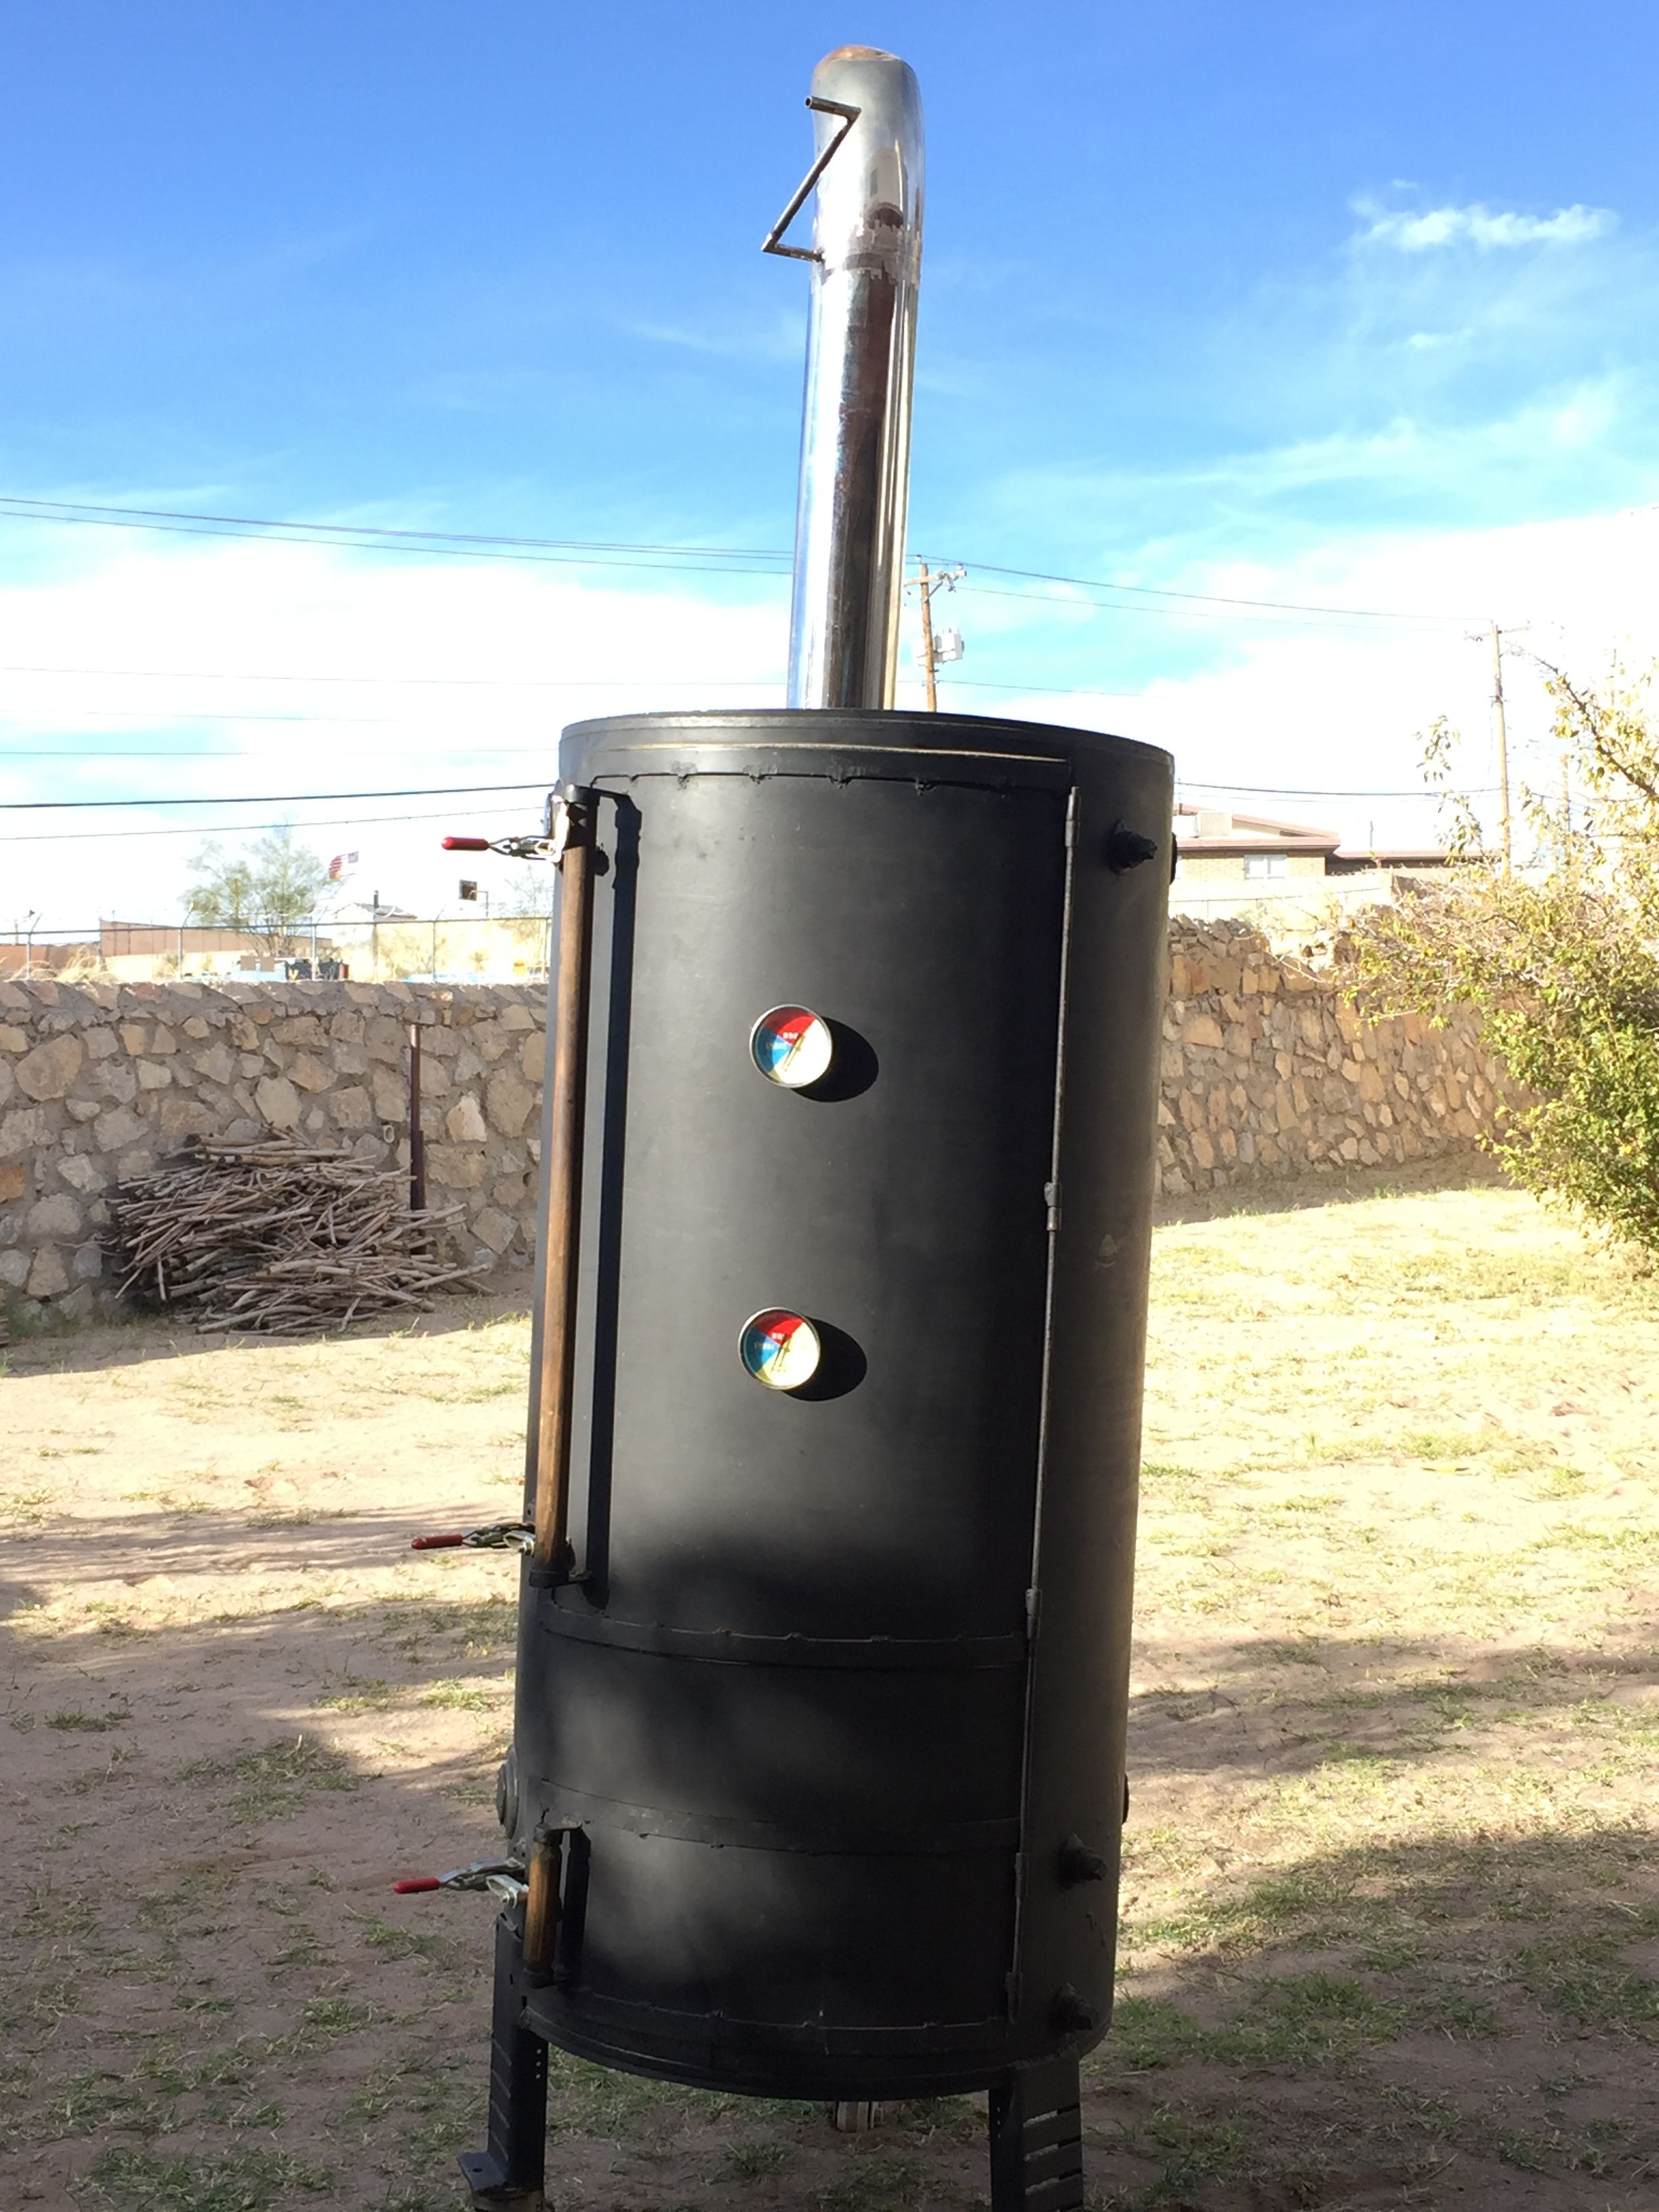 100 Gallon Water Heater Smoker With Semi Truck Smoke Stack And Damper Bbq Pit Water Heater Outdoor Decor